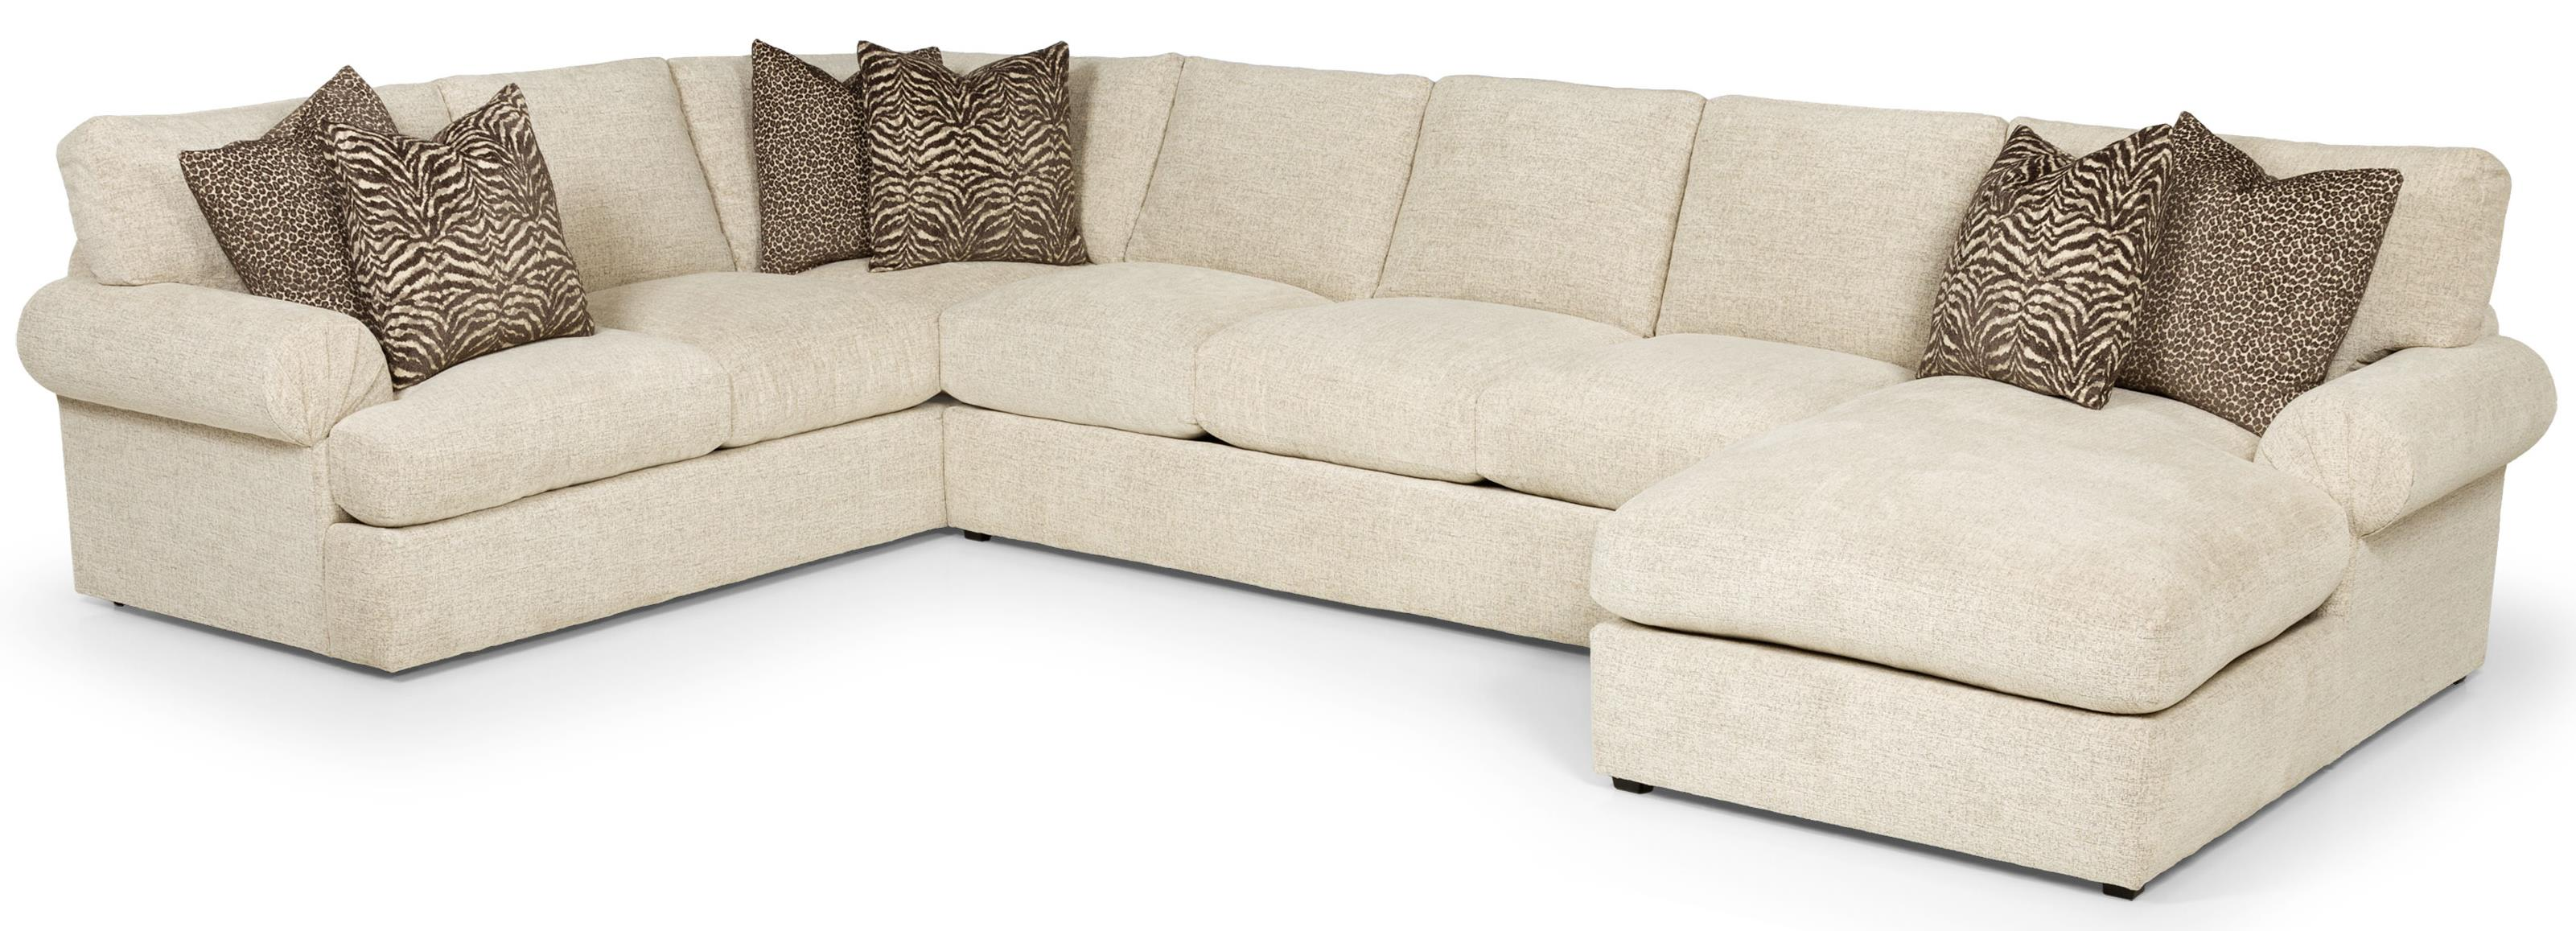 329 Sectional Sofa by Stanton at Wilson's Furniture